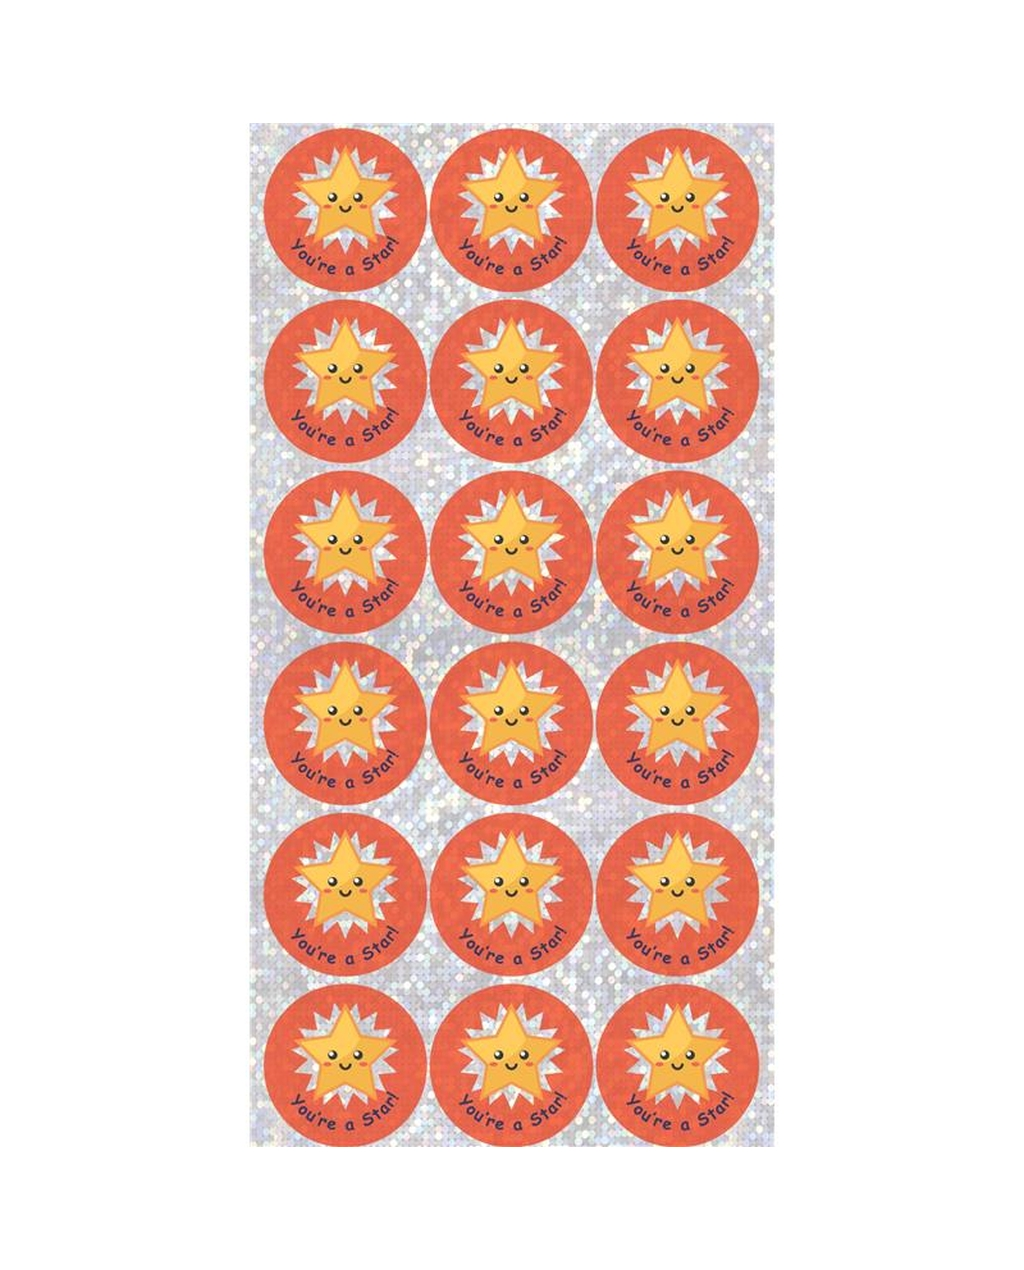 28mm Sparkly Stickers. Gold Star - Super Star. 72 Stickers